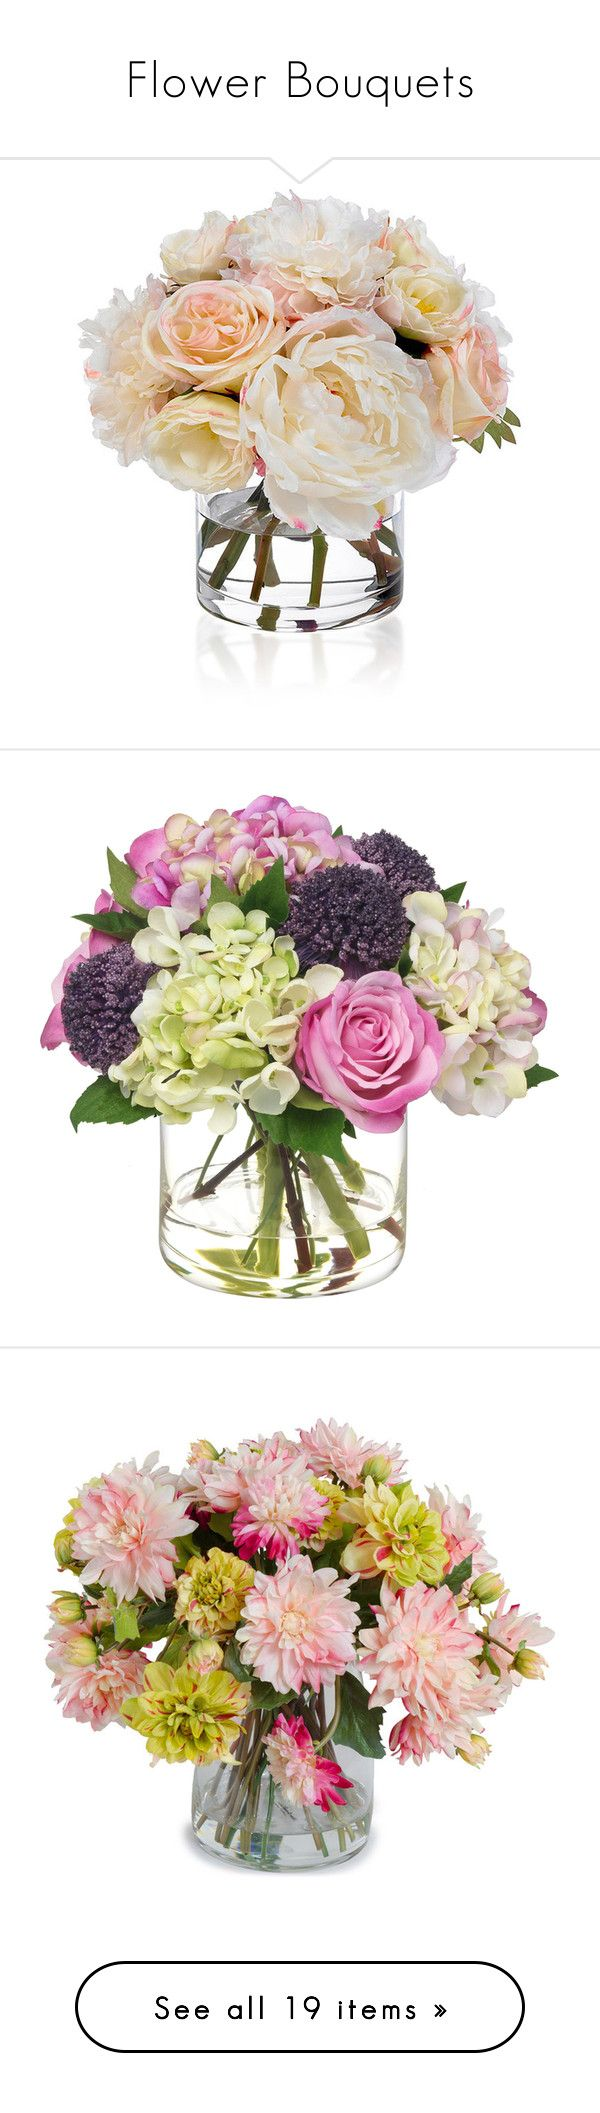 """""""Flower Bouquets"""" by anetacerna ❤ liked on Polyvore featuring home, home decor, floral decor, flowers, filler, plants, decor, silk arrangements, silk flowers and silk floral"""